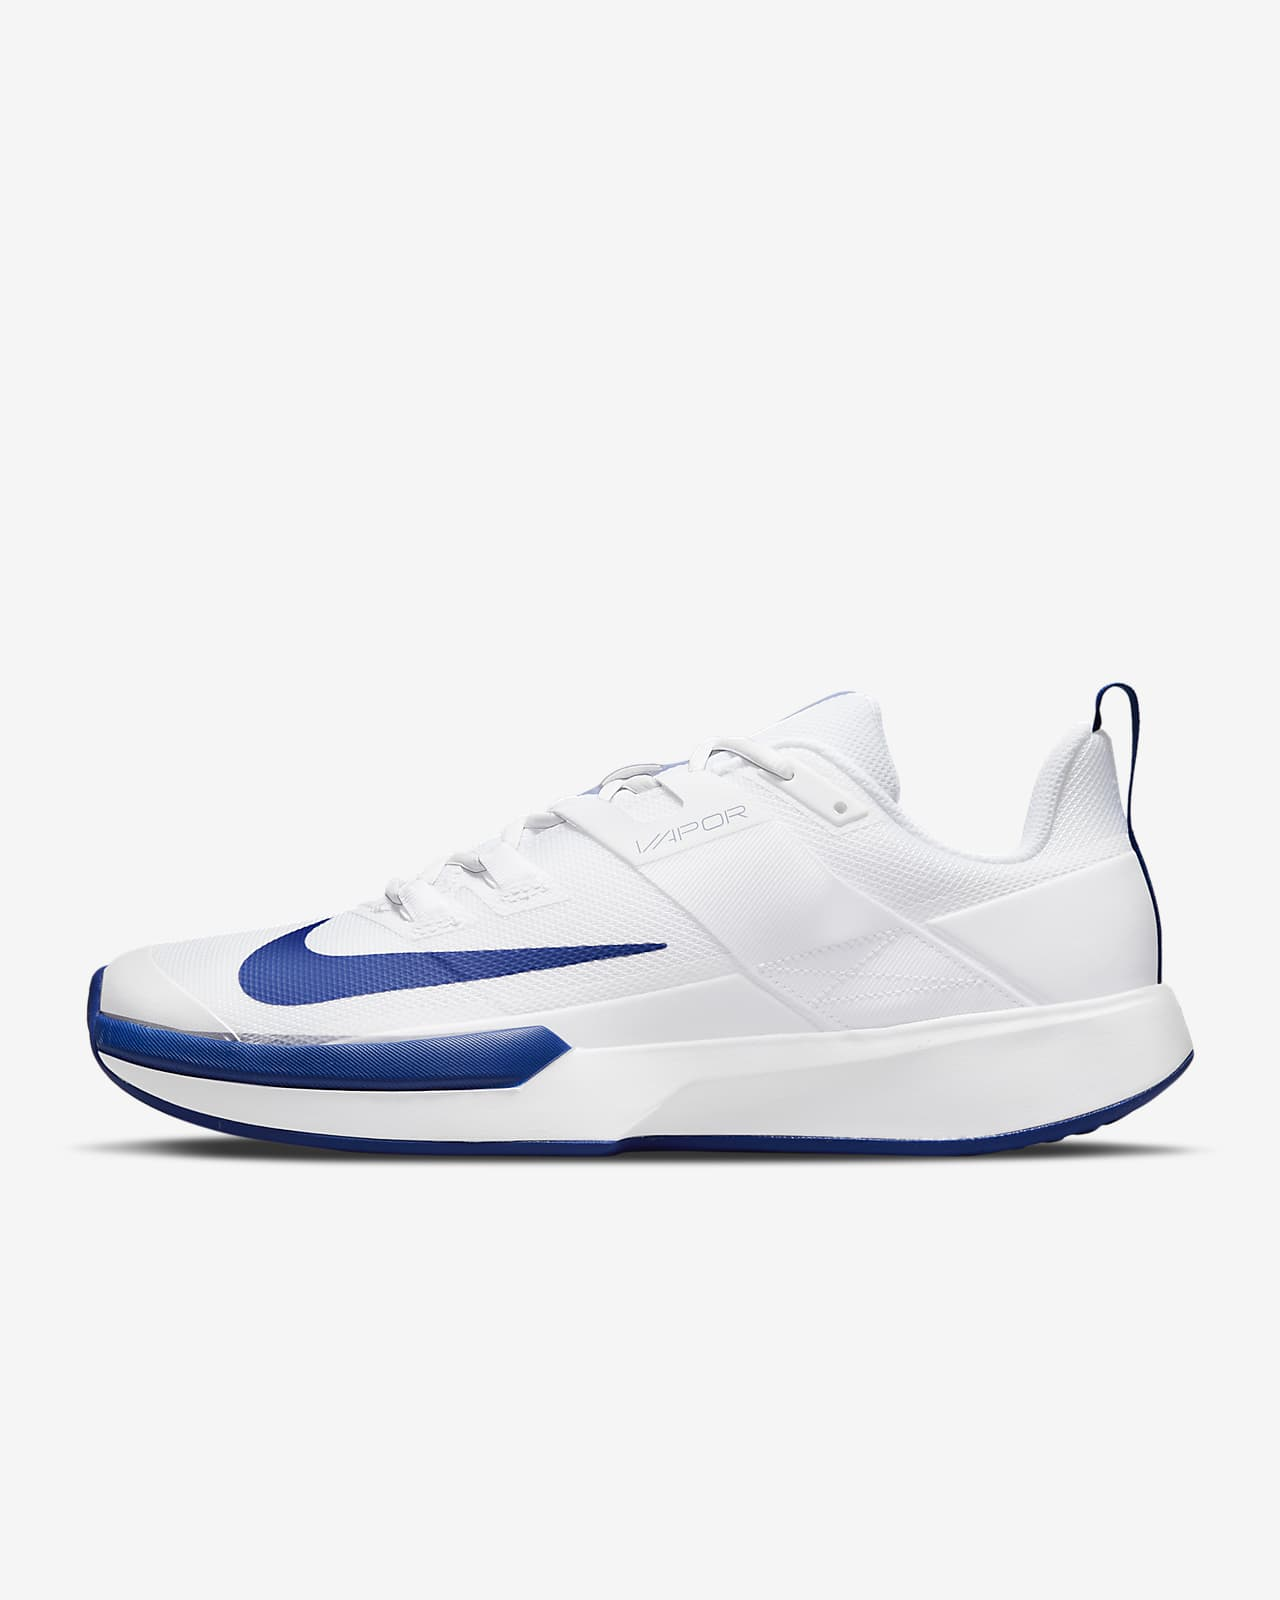 NikeCourt Vapor Lite Men's Hard-Court Tennis Shoe